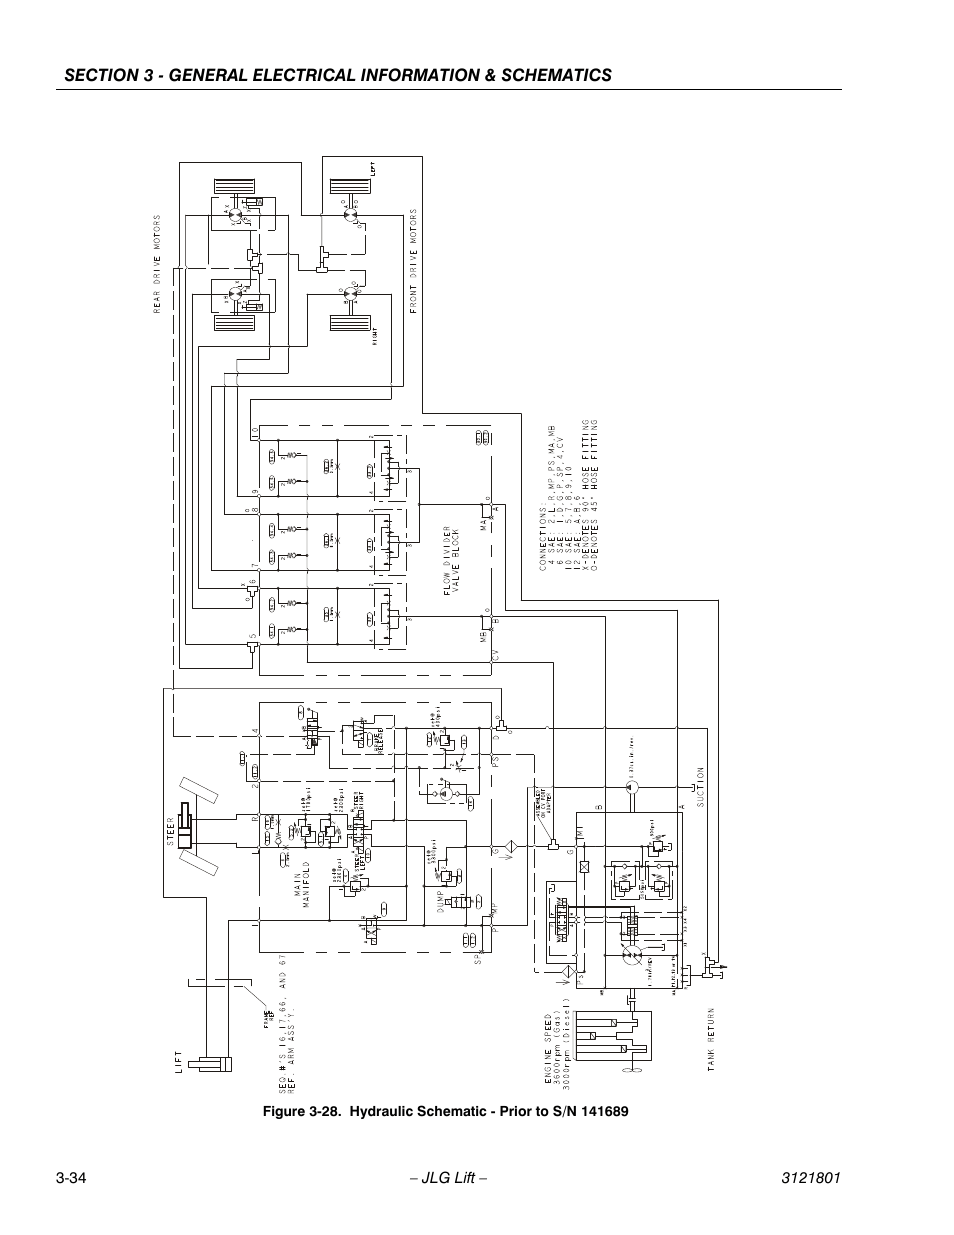 hight resolution of hydraulic schematic prior to s n 141689 34 jlg 260mrt service manual